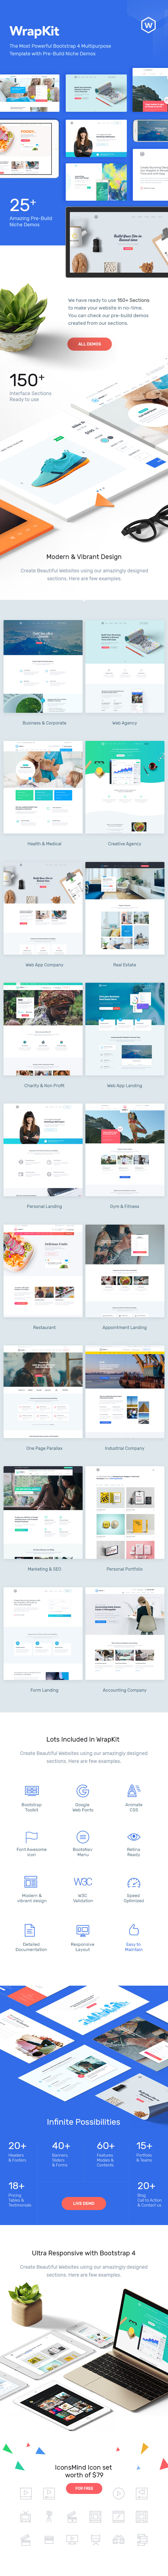 WrapKit - Bootstrap 4 Multipurpose Template - 2